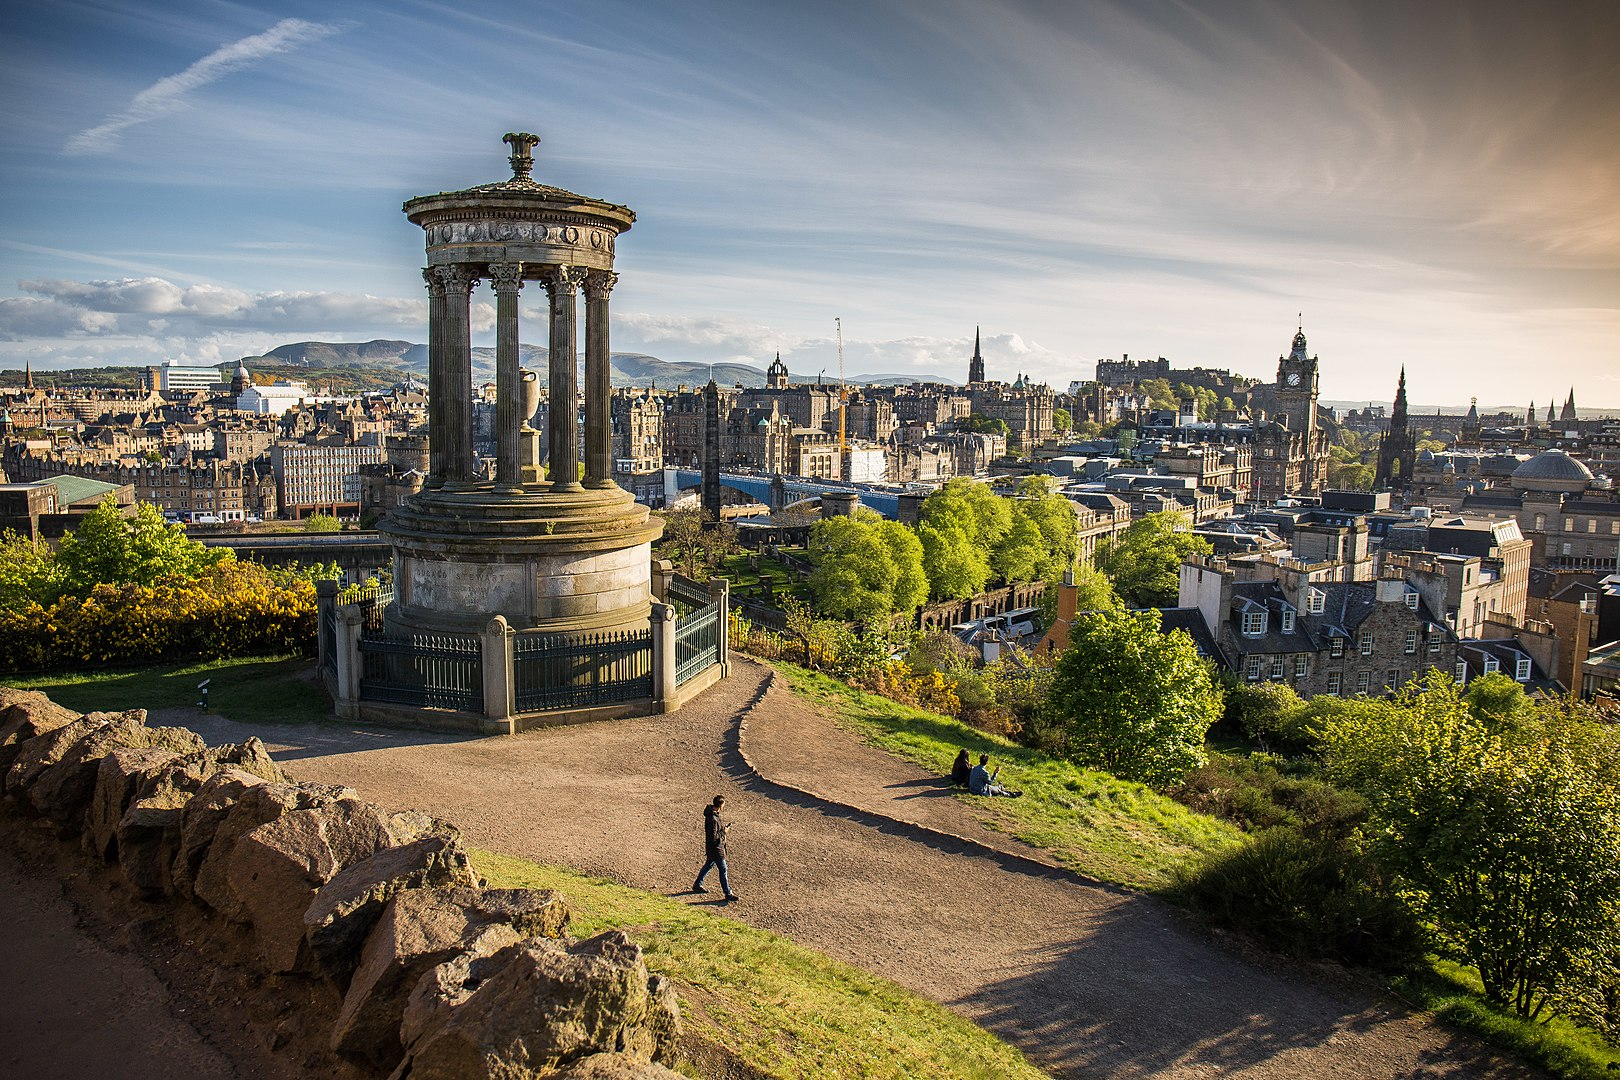 England in French - Edinburgh © Nono vlf - licence [CC BY-SA 4.0] from Wikimedia Commons